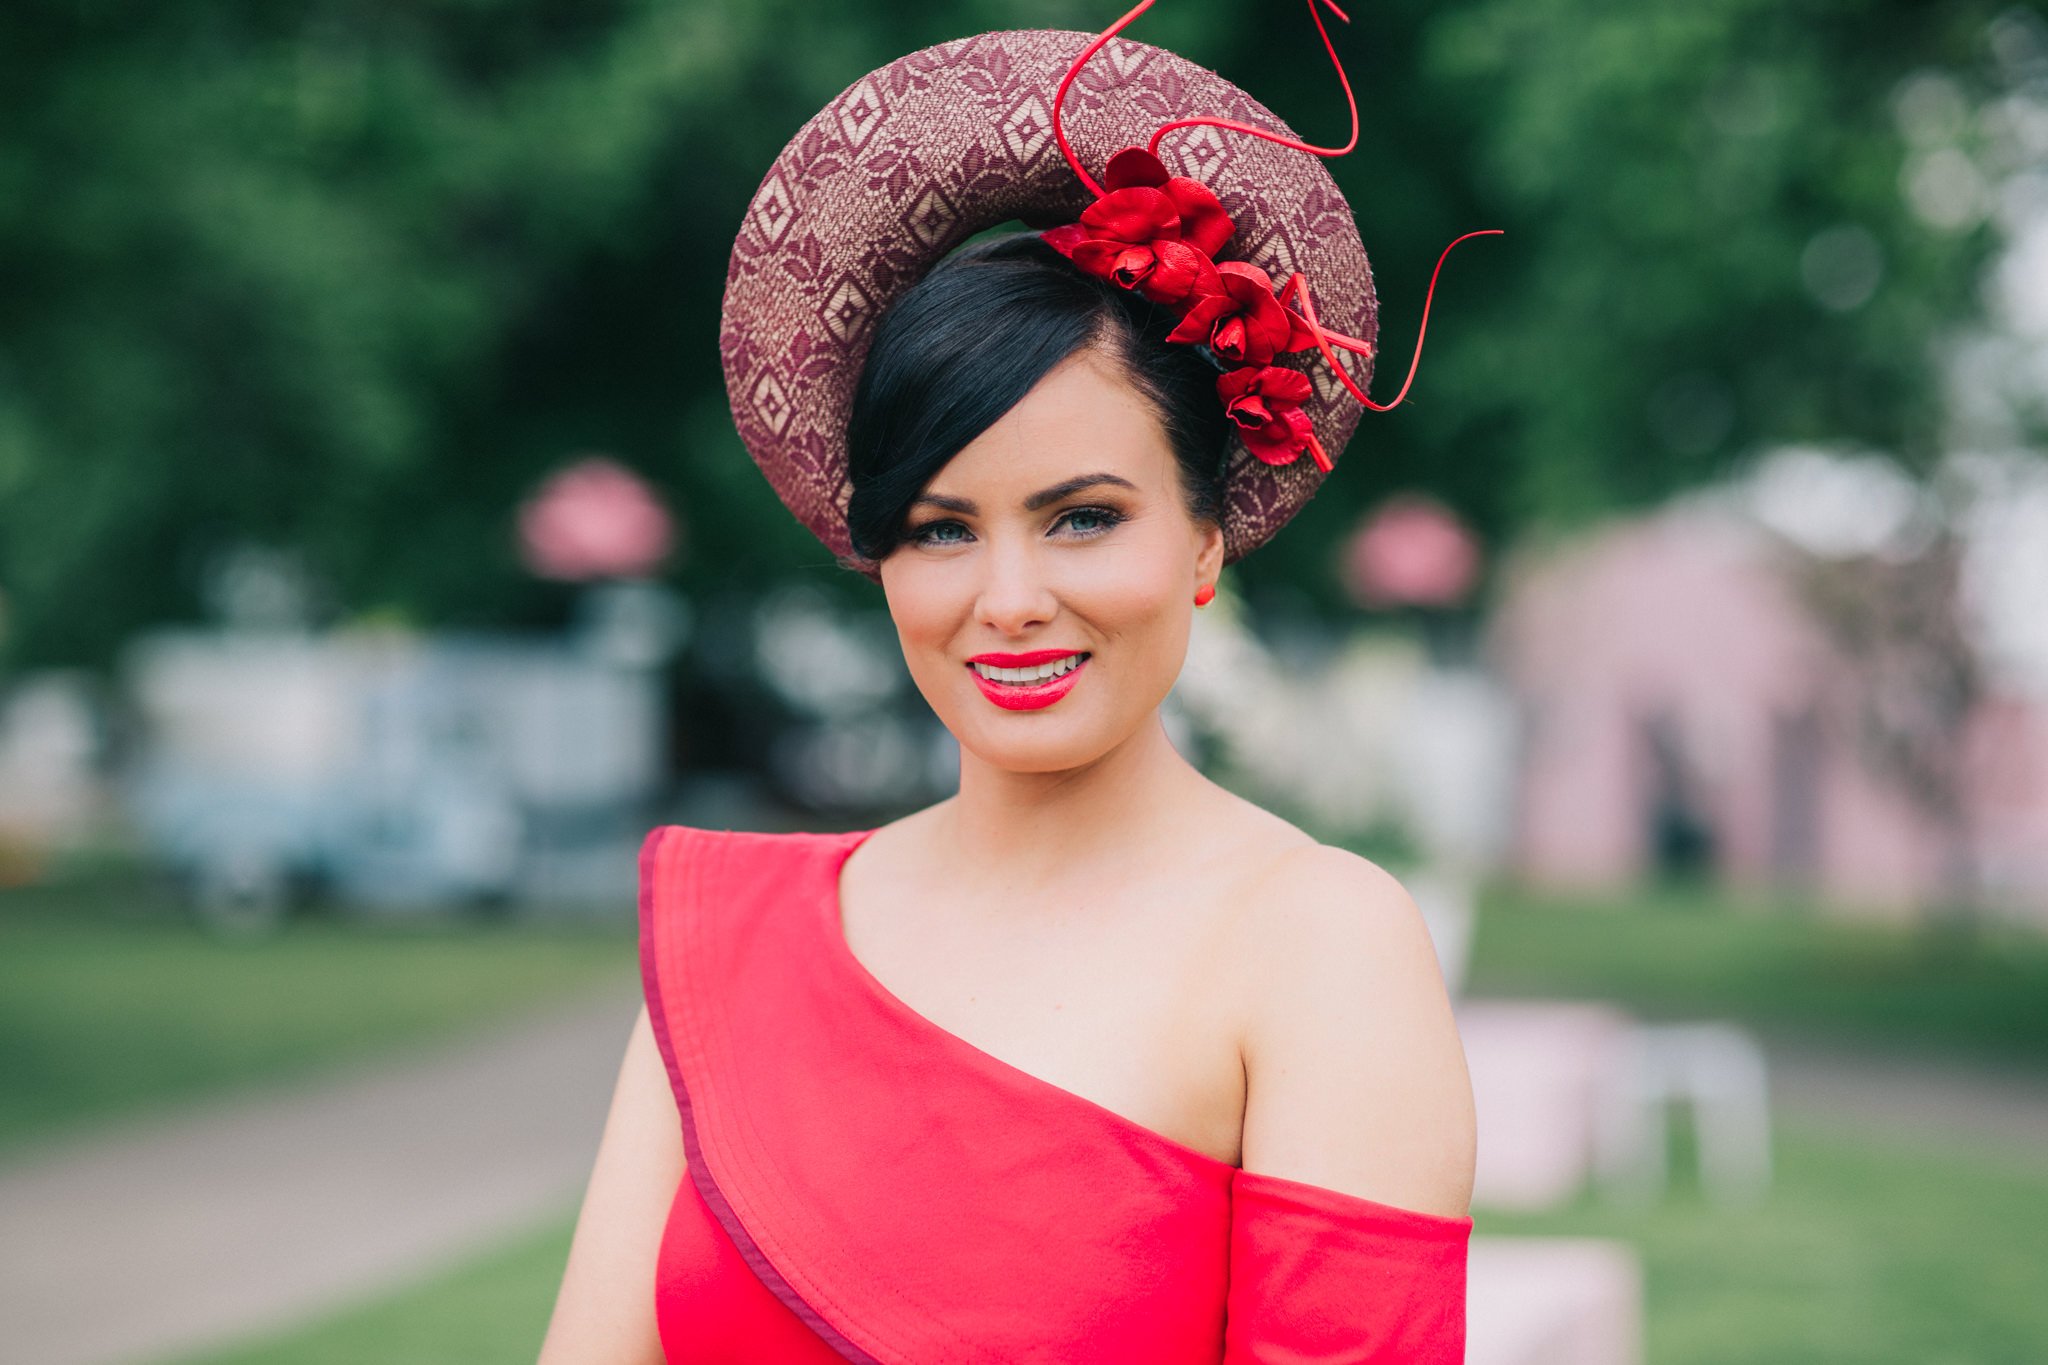 Best photos of the fashions on the field winners